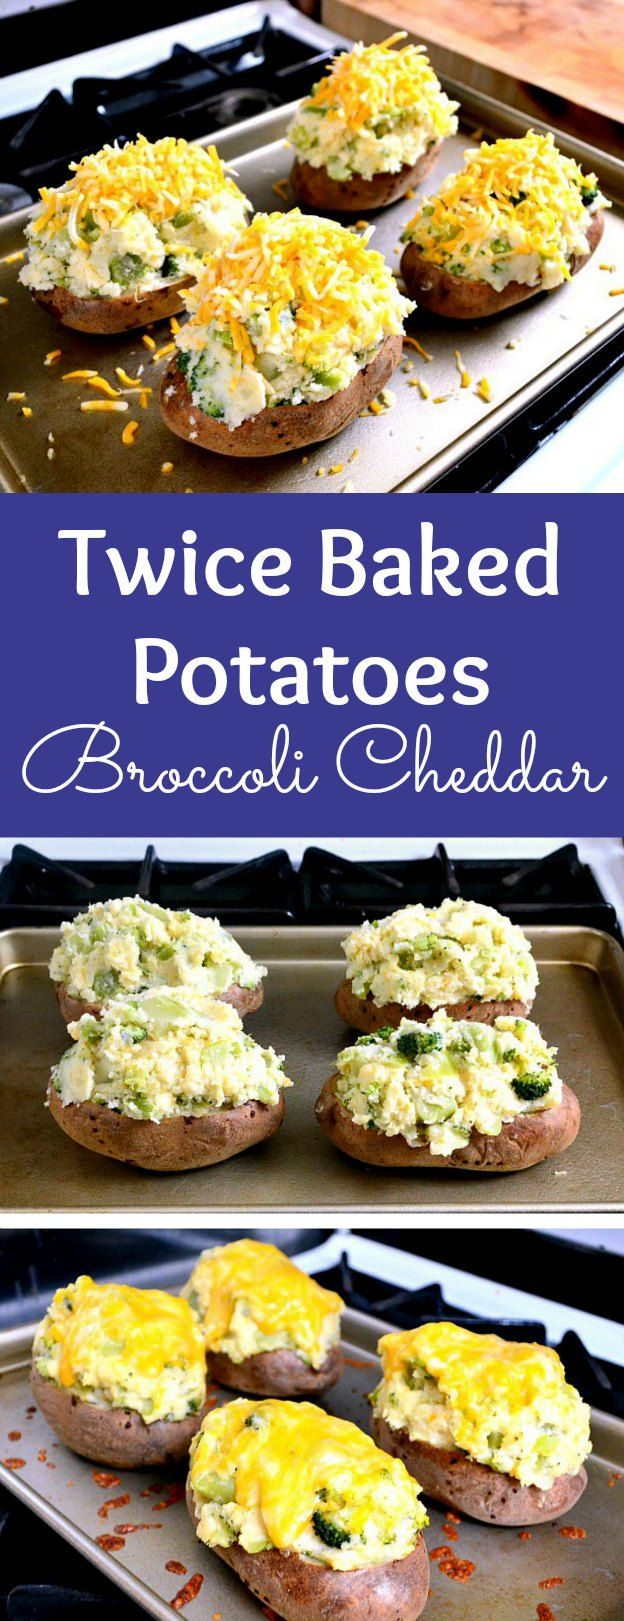 How to make Twice Baked Potatoes with Broccoli and Cheddar, an easy Twice Baked Potatoes recipe! Homemade stuffed potatoes you can make ahead for a vegetarian dinner or a side dish for any meal! These vegetarian Twice Baked Potatoes are loaded with broccoli and cheddar cheese. Bake these cheesy double stuffed Twice Baked Potatoes in the oven for a simple main dish! | Hello Little Home #potatoes #twicebakedpotatoes #stuffedpotatoes #bakedpotato #vegetarianrecipes #cheesy #broccoli #cheddar